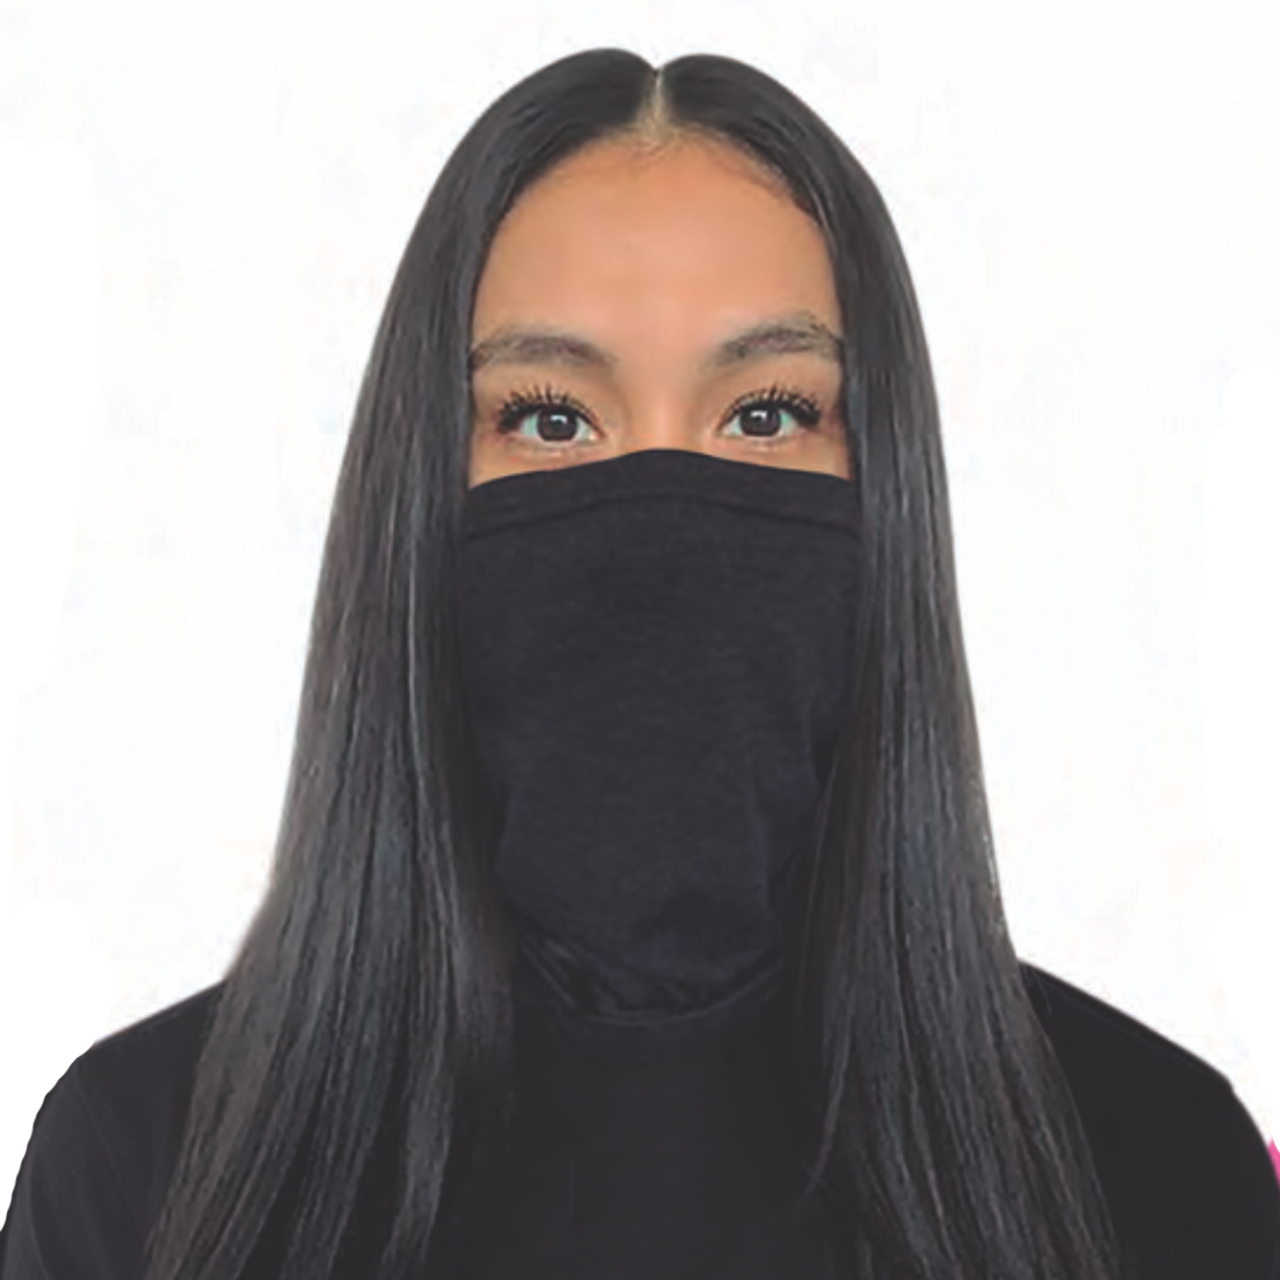 Details about  /Black Neck Gaiter with Hearts